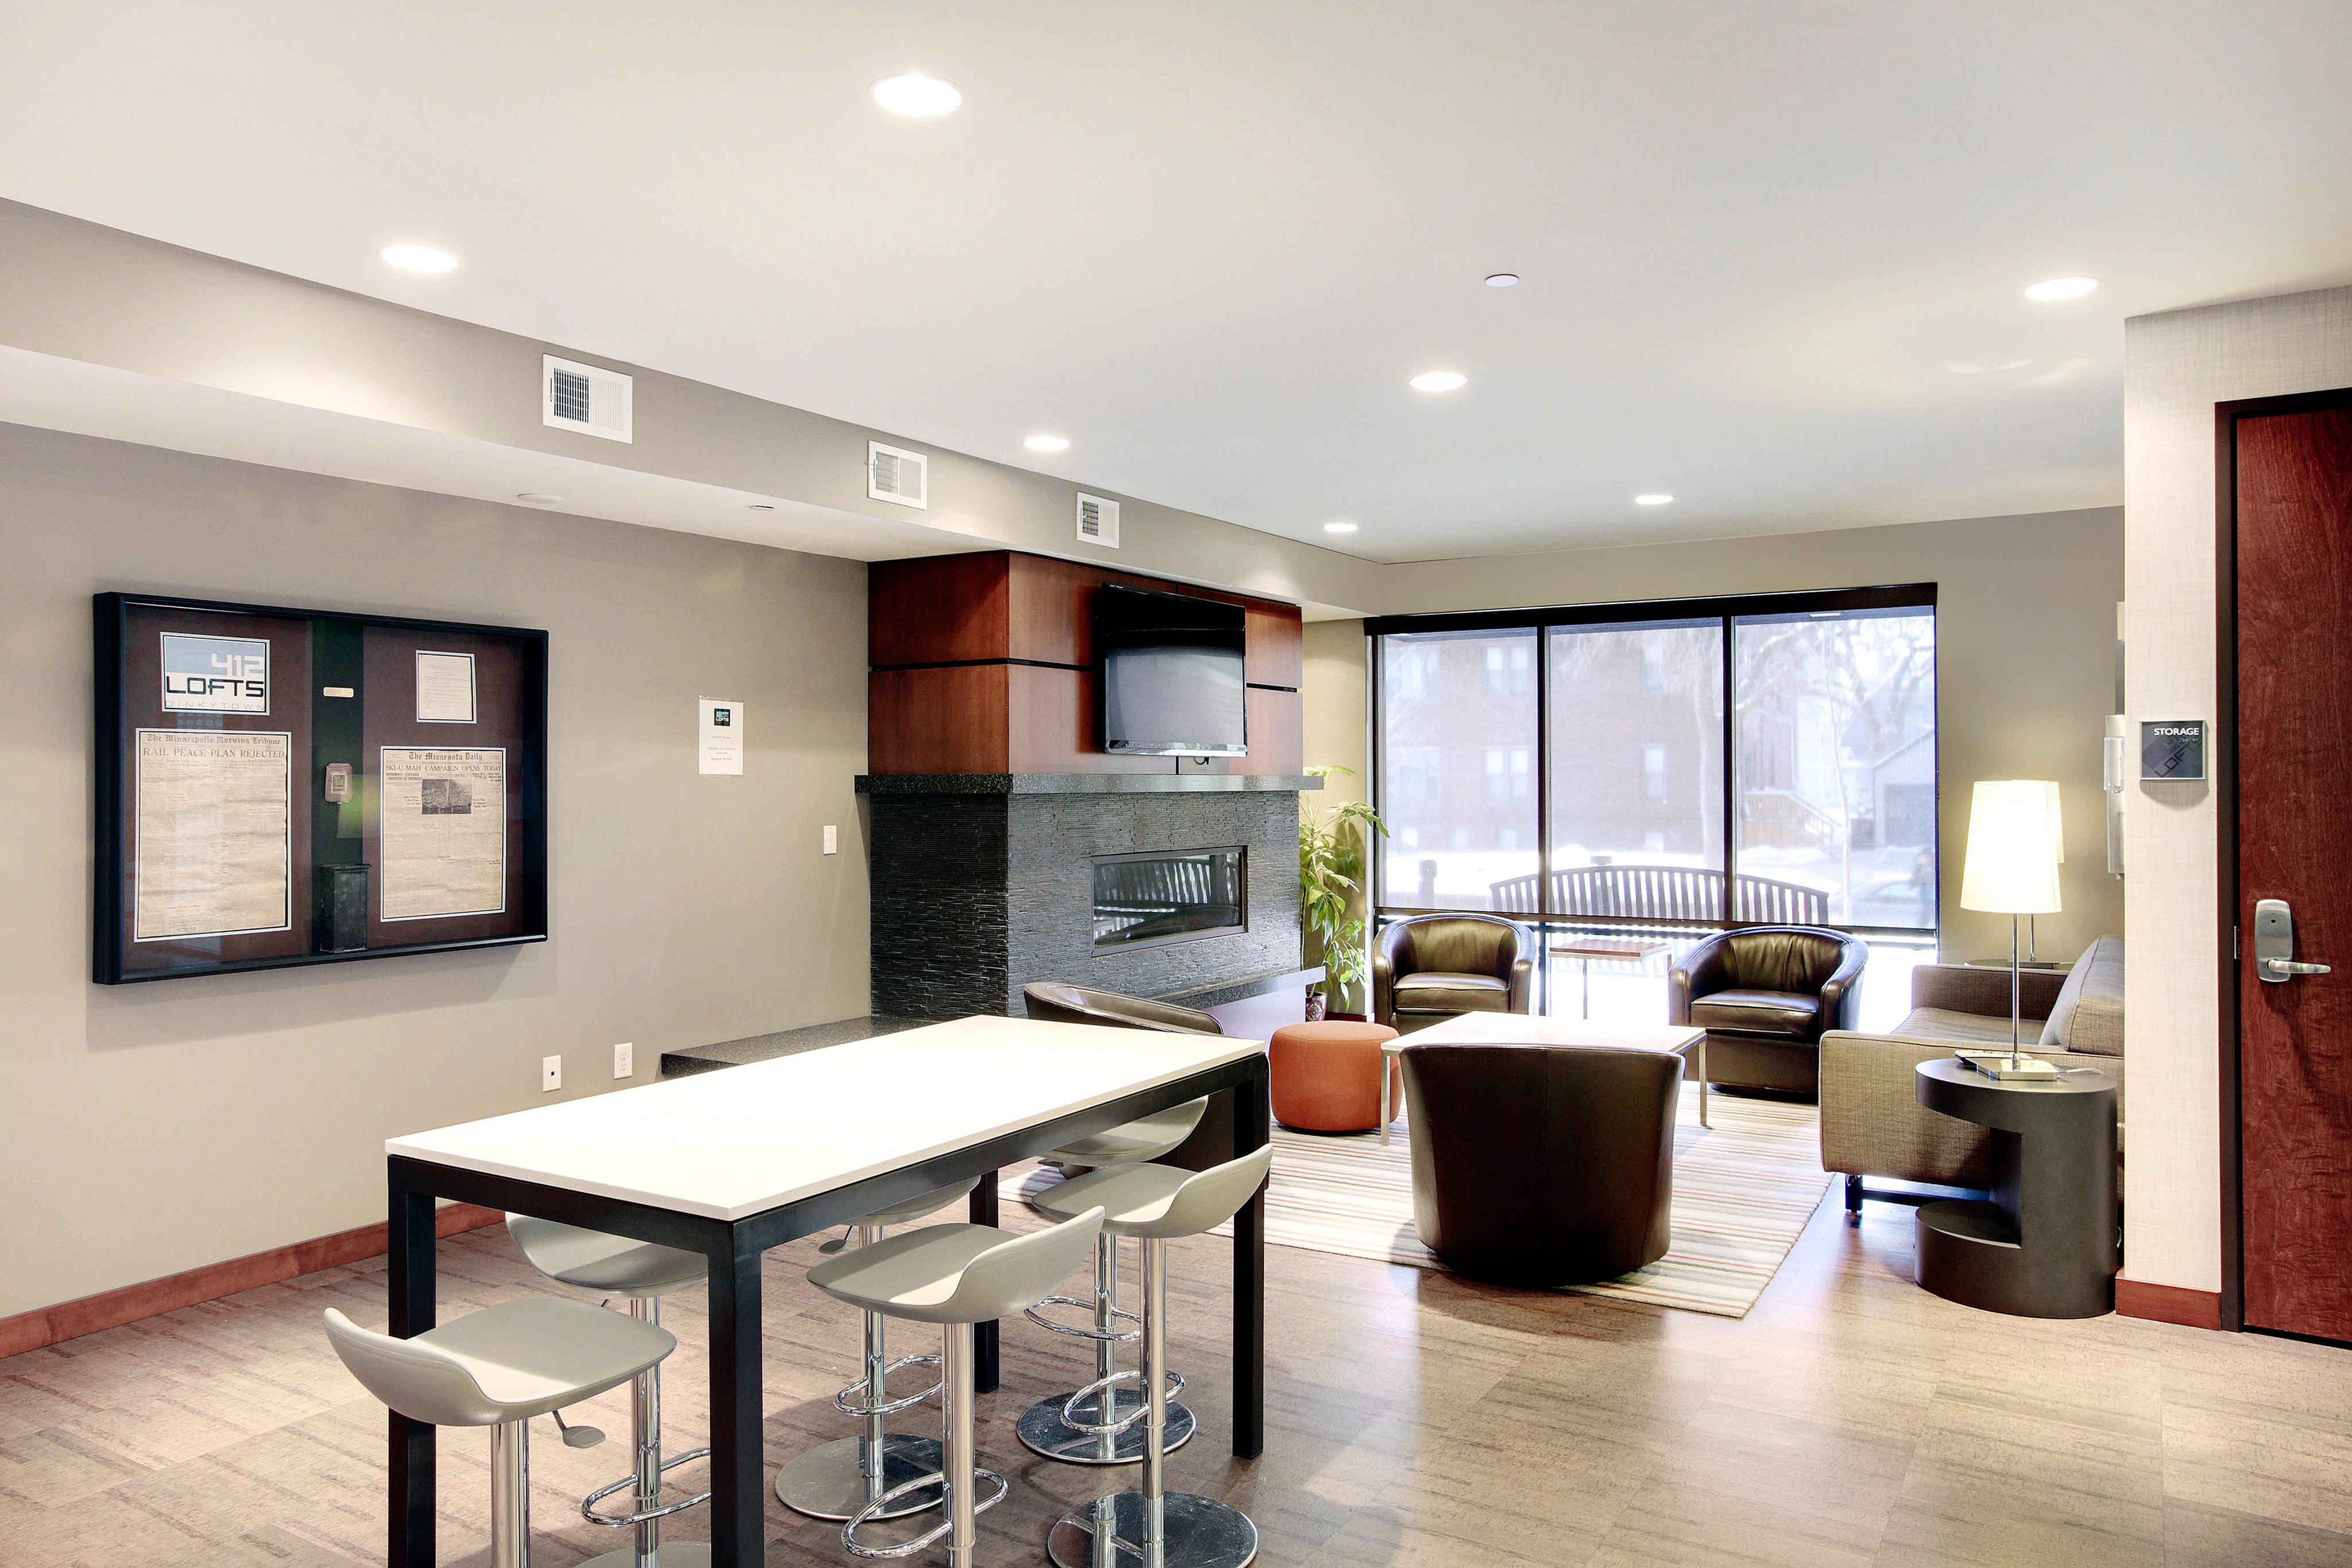 412 Lofts Apartments Lifestyle - Clubhouse